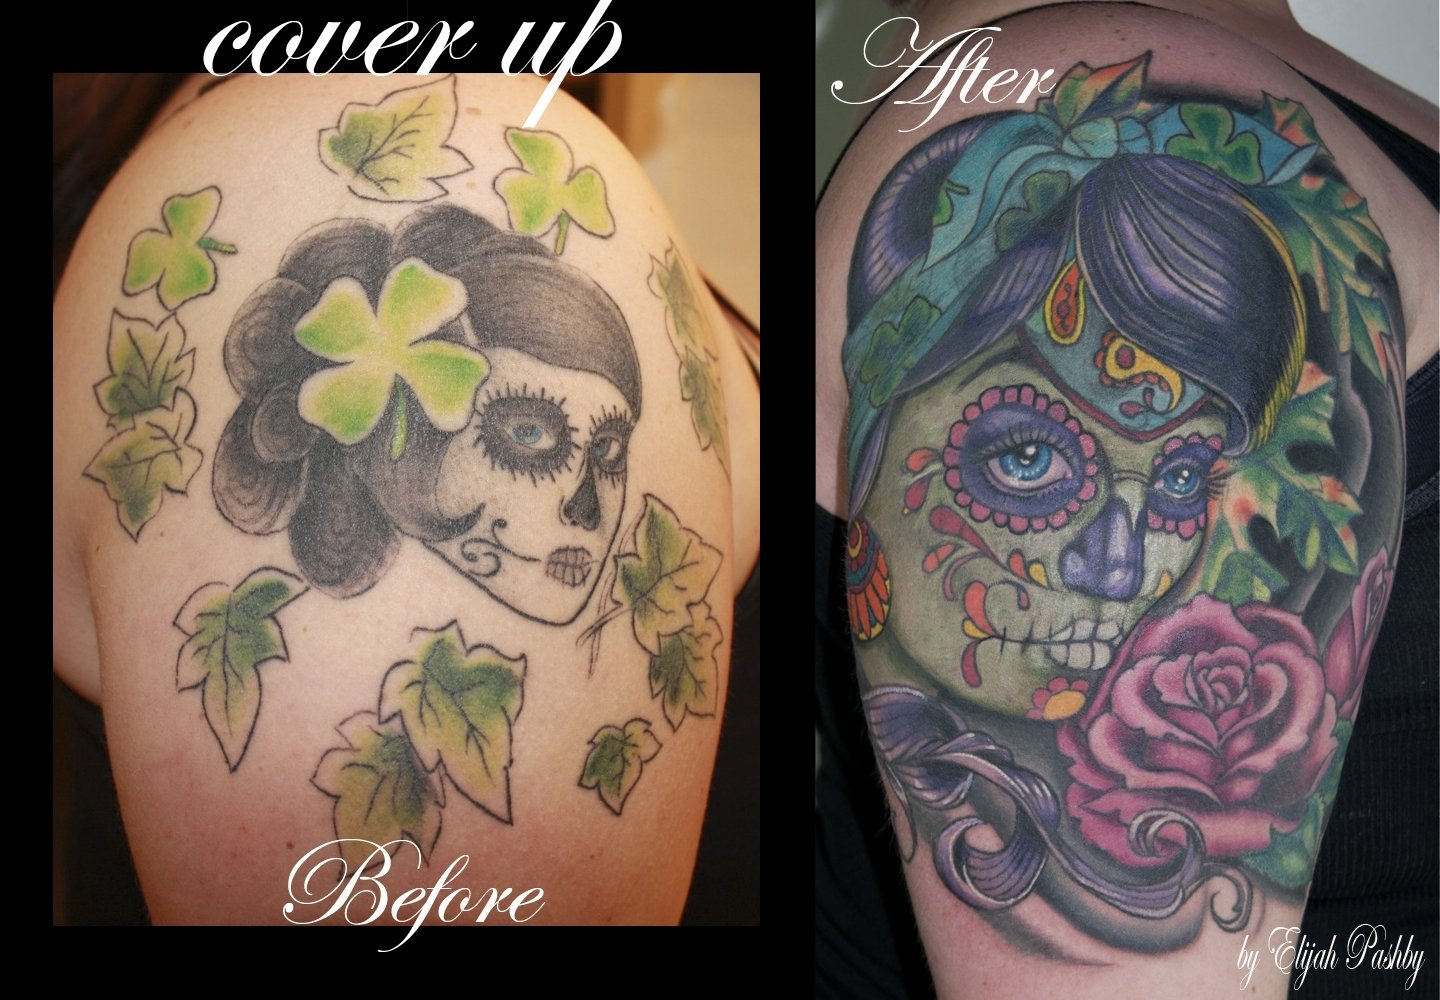 10 Stylish Large Tattoo Cover Up Ideas cover up tattoos amazing tattoo ideas 1 2020